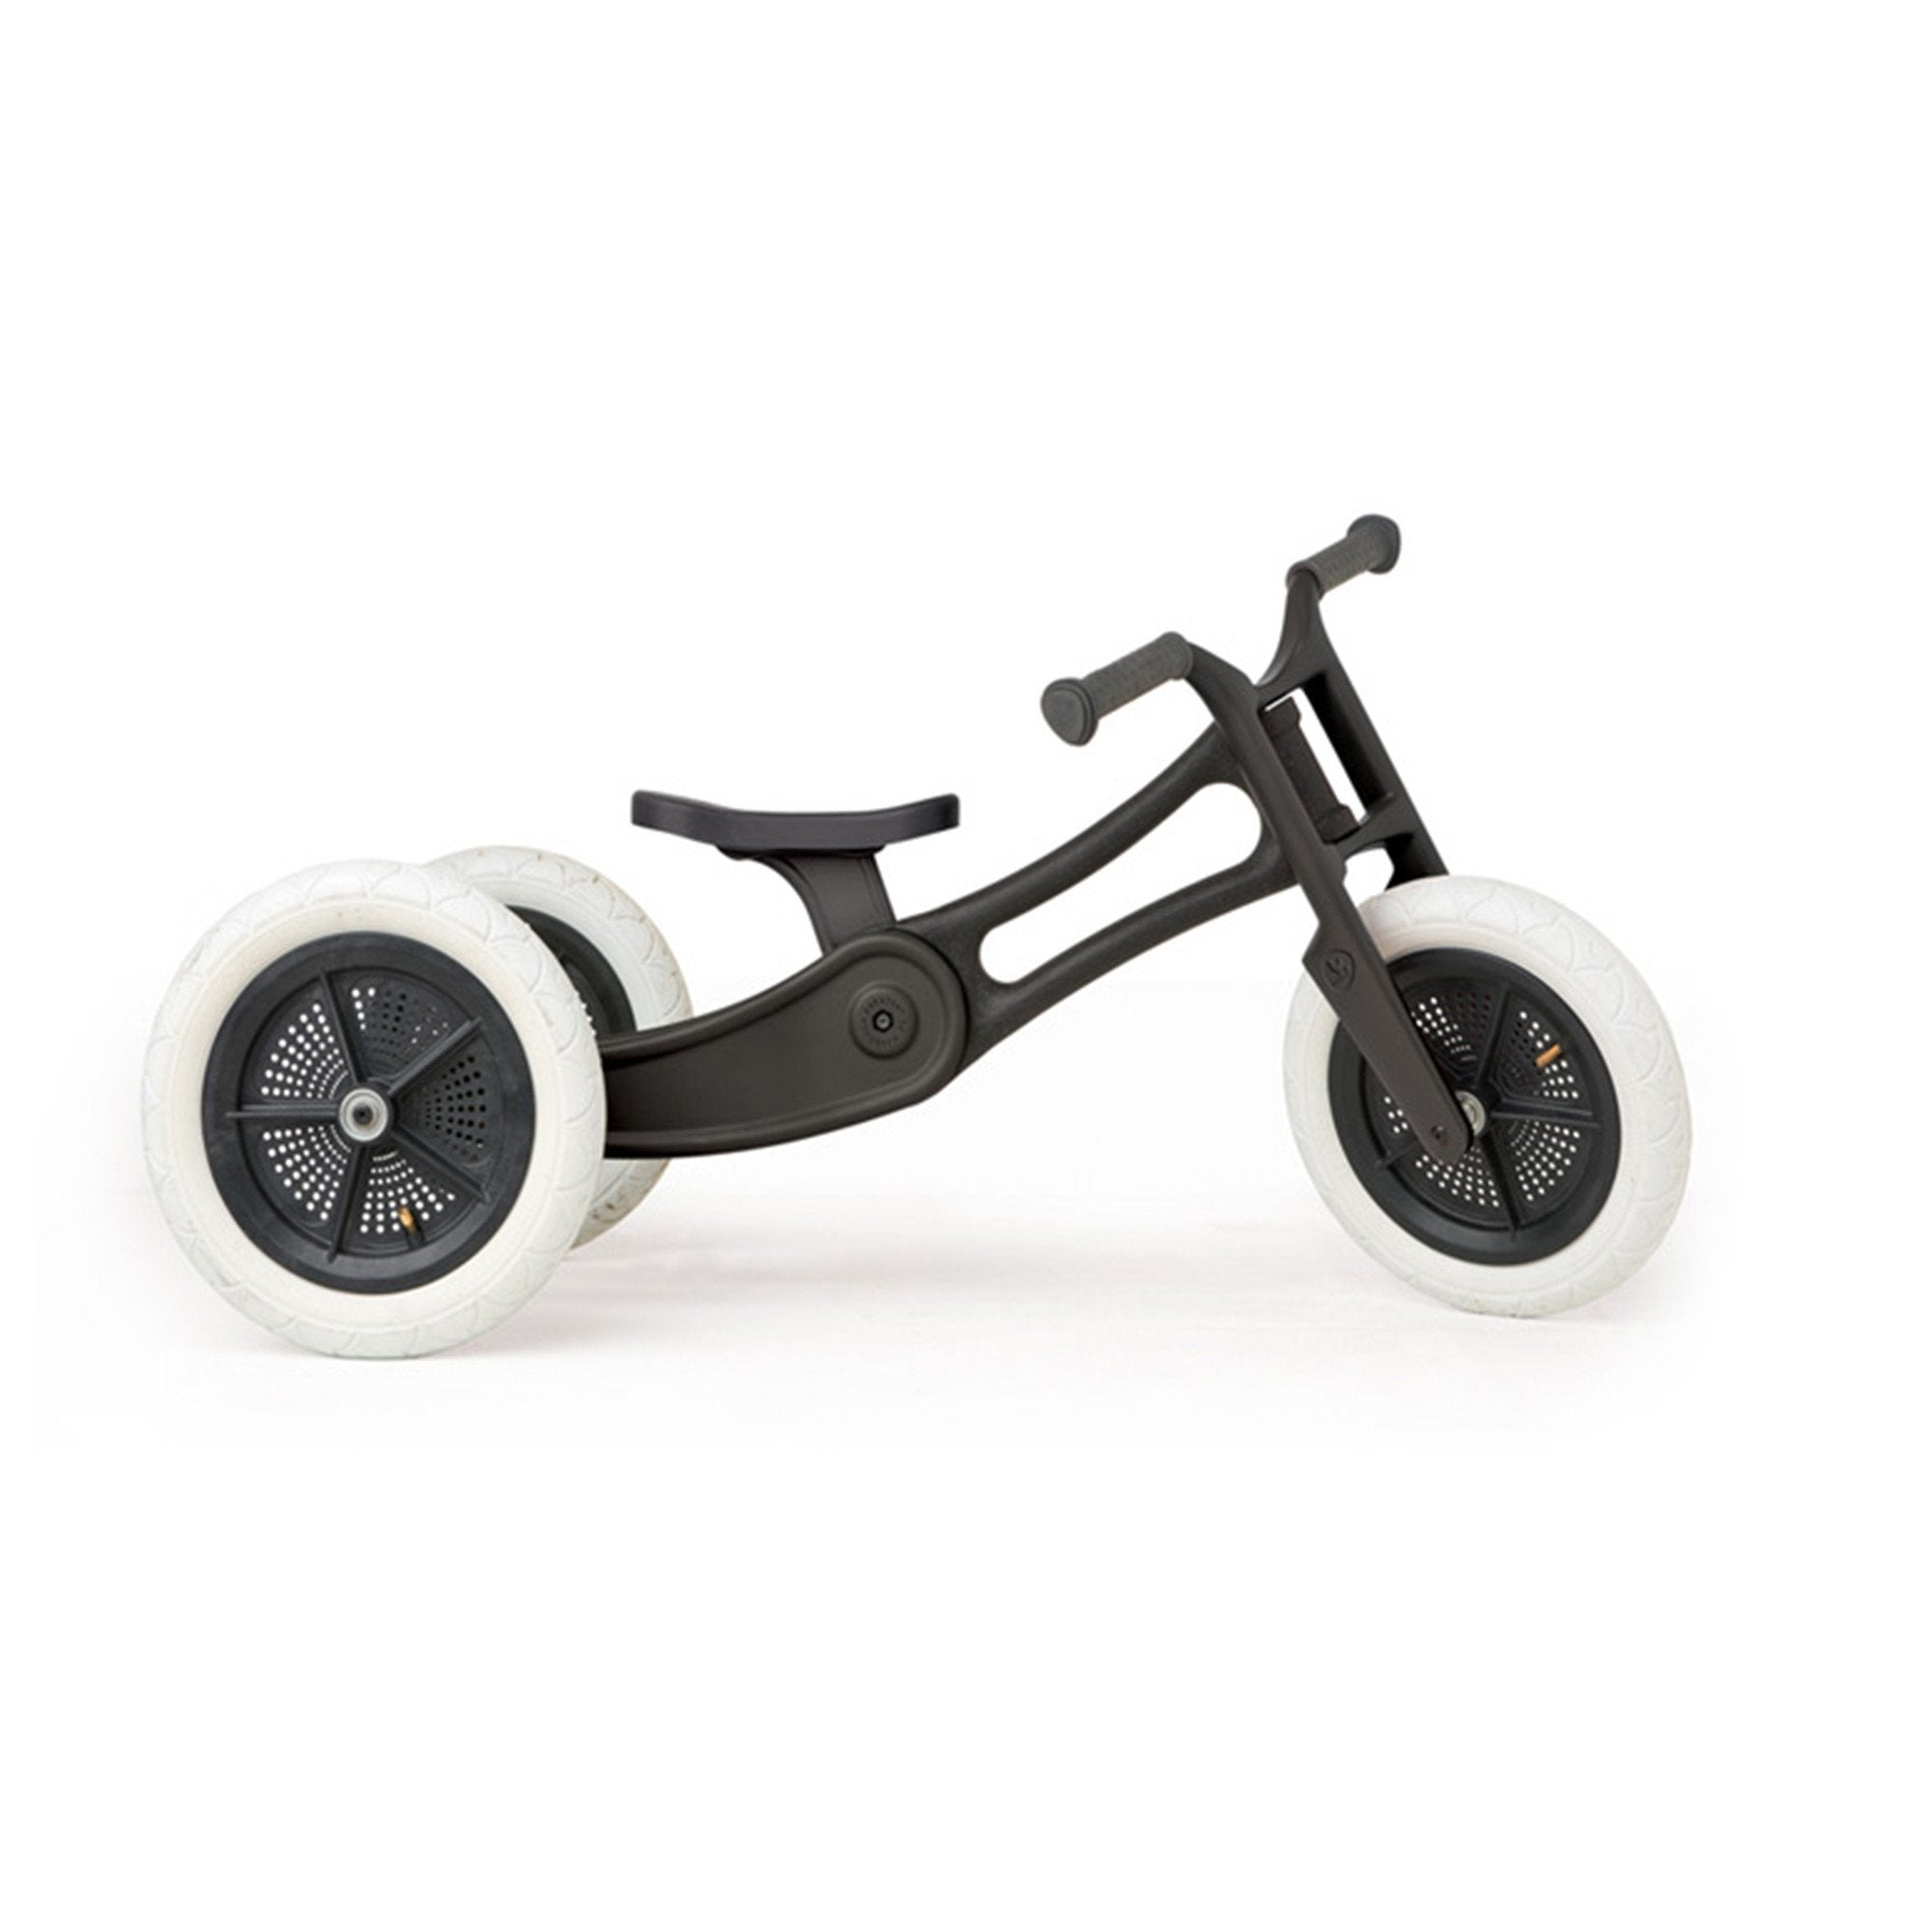 Wishbone Recycled Balance Bike and Trike Wishbone Australia Kids Riding Vehicles at Little Earth Nest Eco Shop